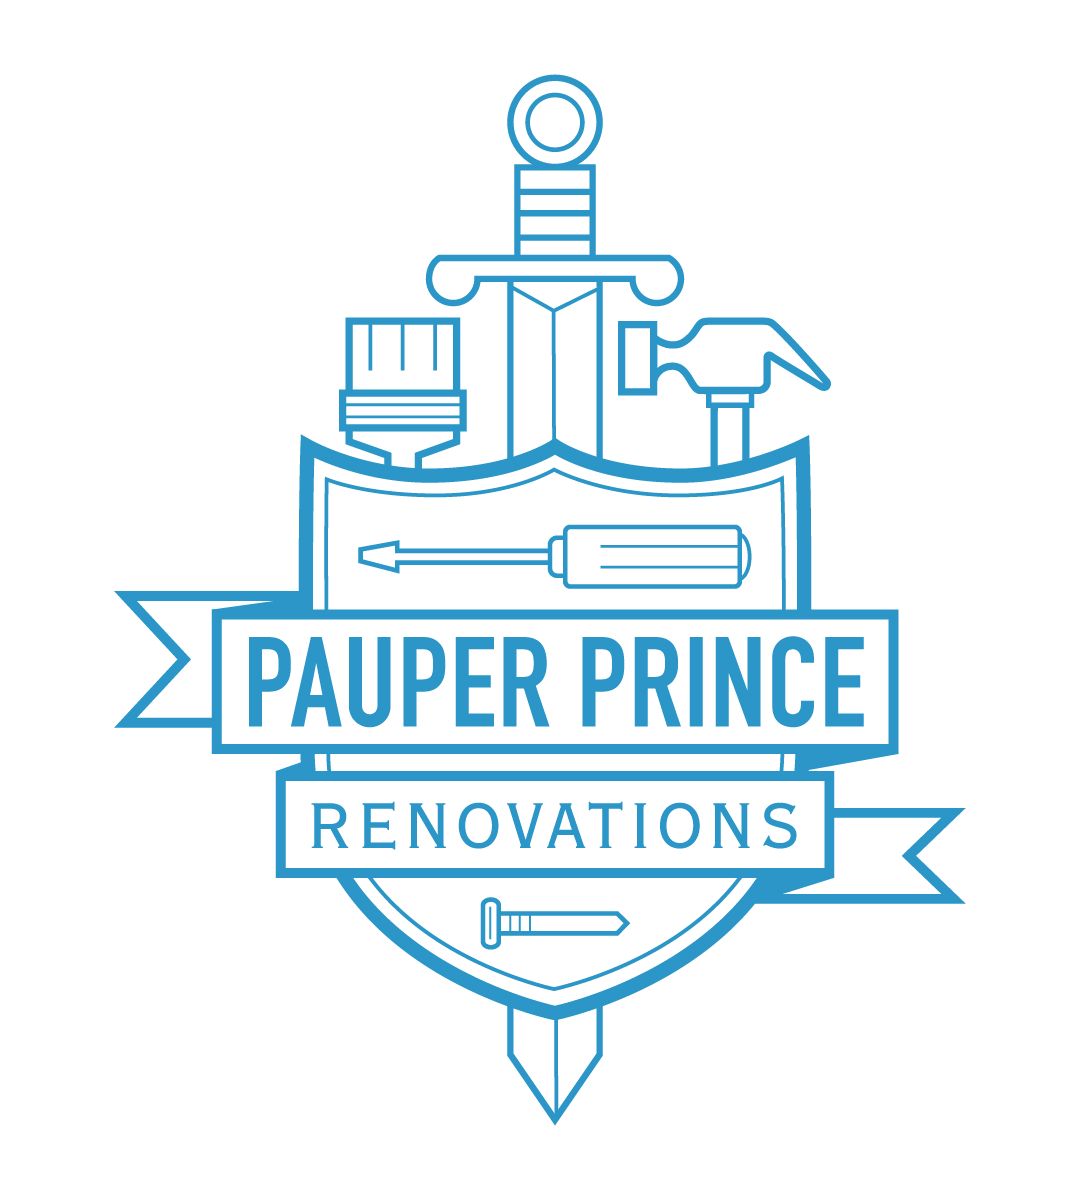 PAUPER PRINCE RENOVATIONS INC logo